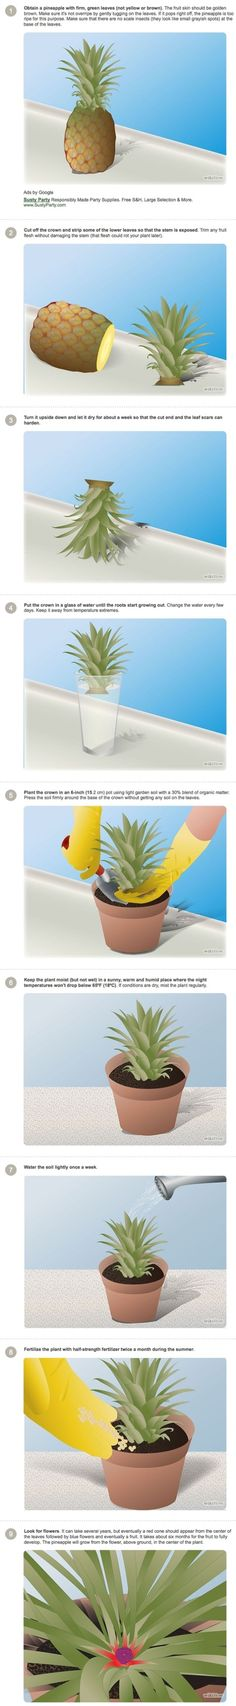 Very Pinteresting - How to grow a pineapple